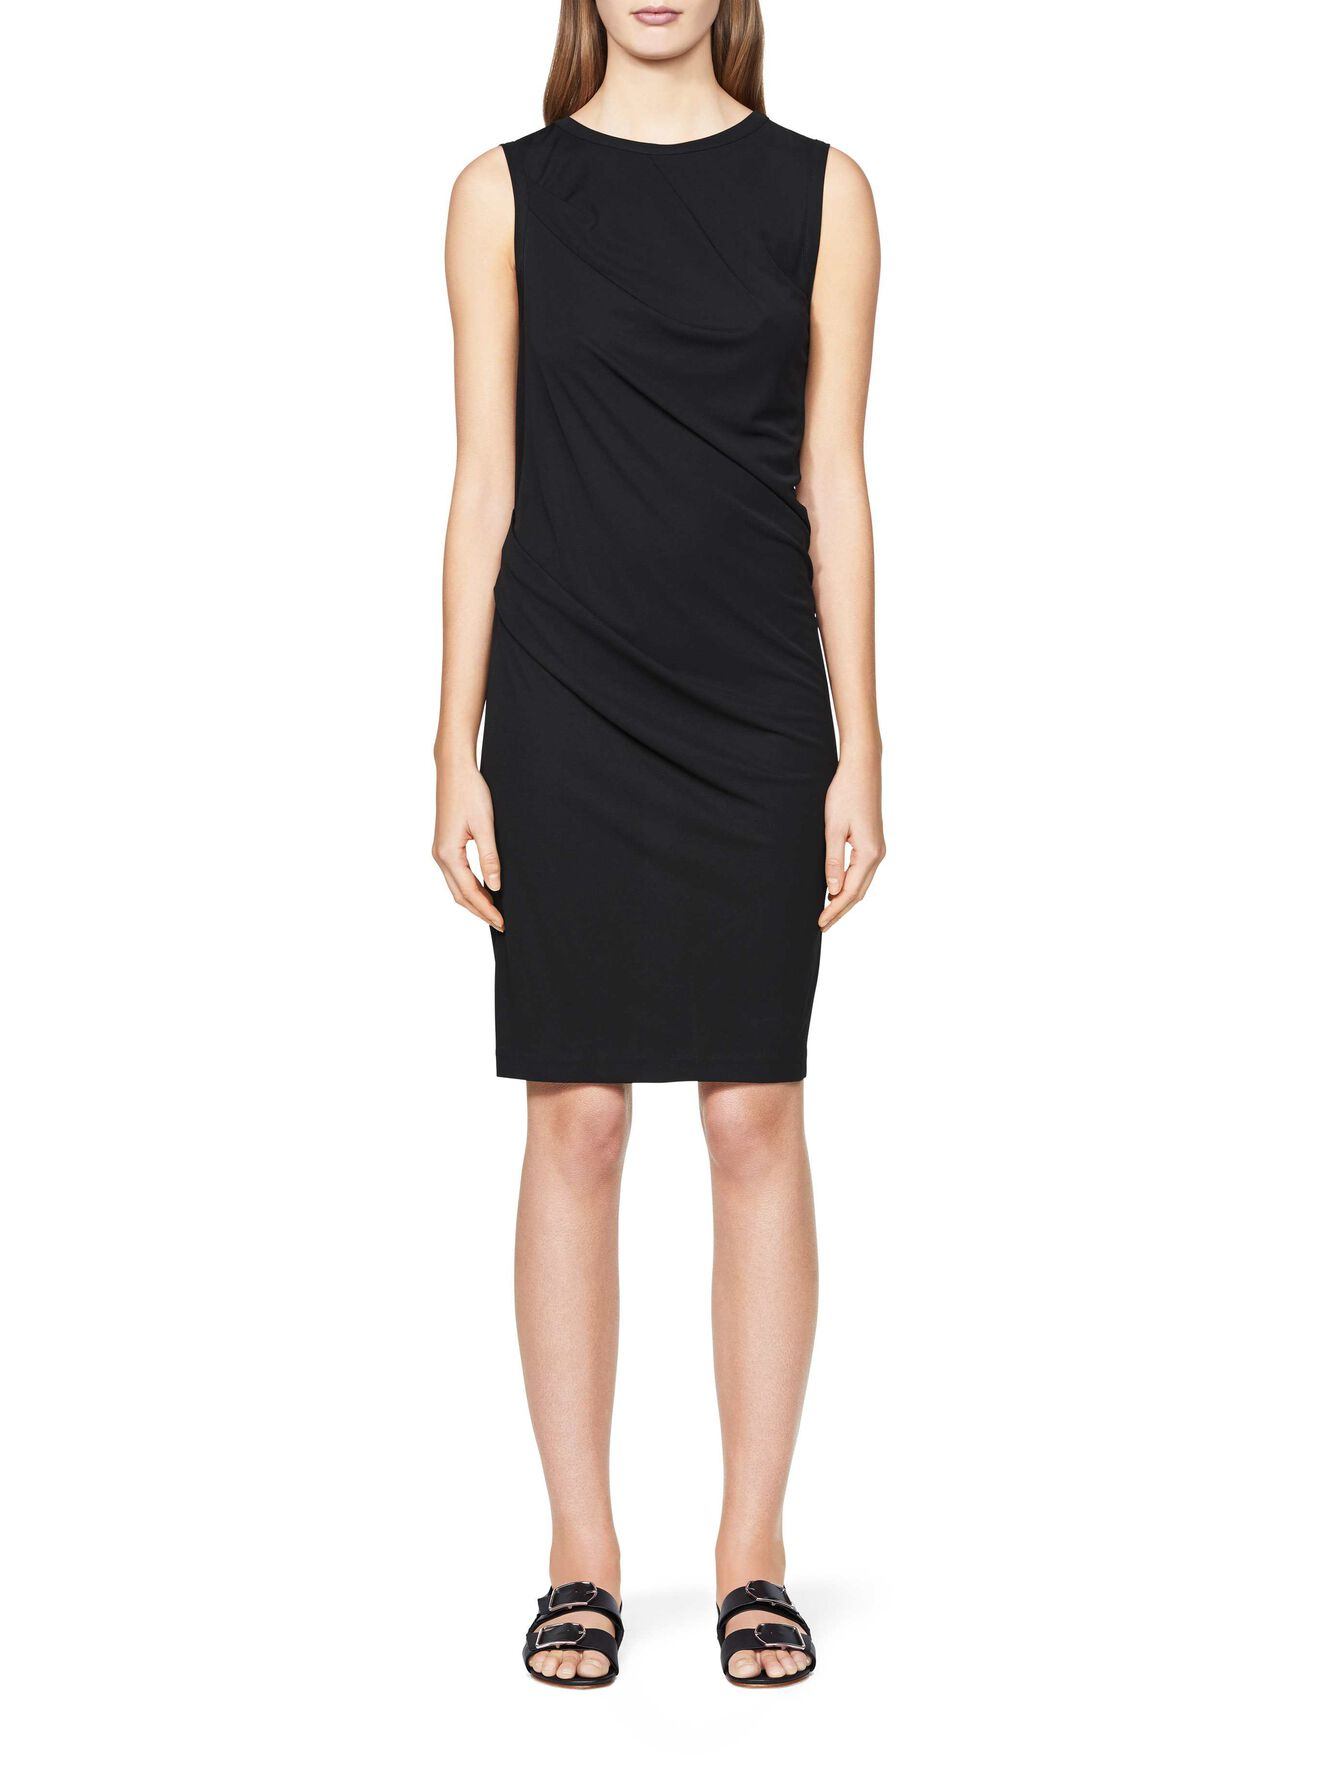 Kimia dress in Night Black from Tiger of Sweden